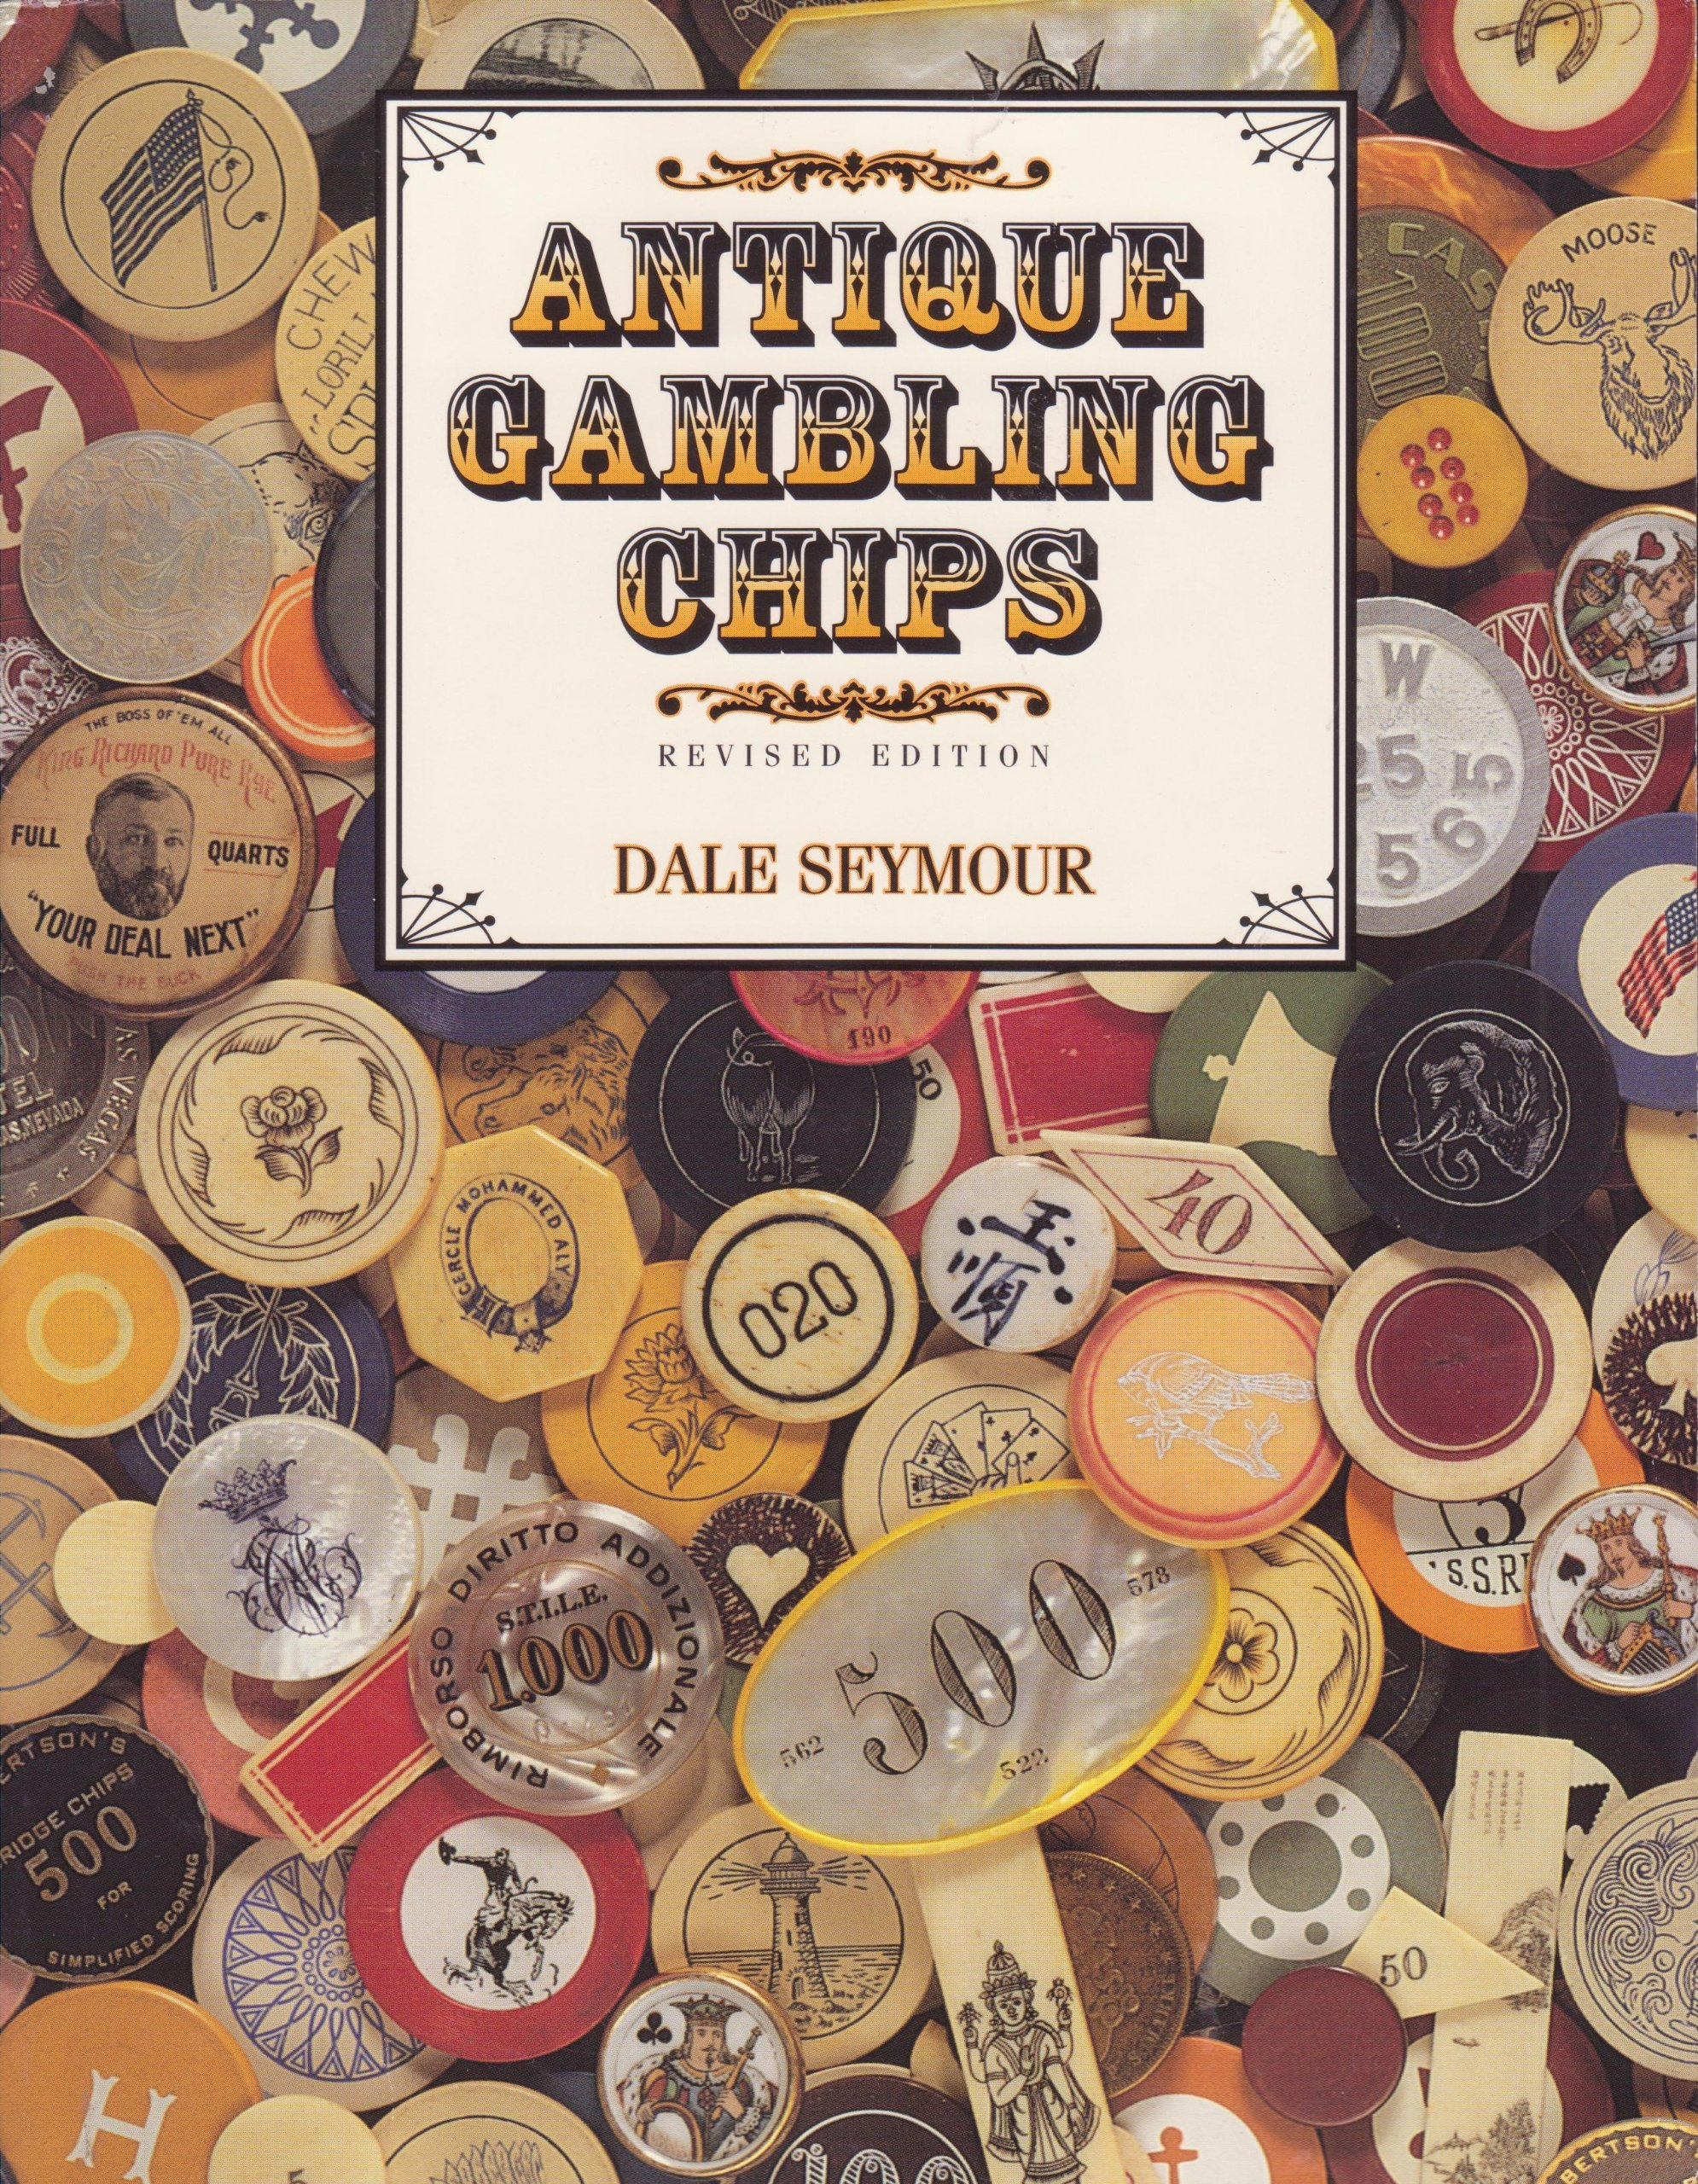 Dale seymour antique gambling chips 2.0.10 2001 2002 casino phpbb